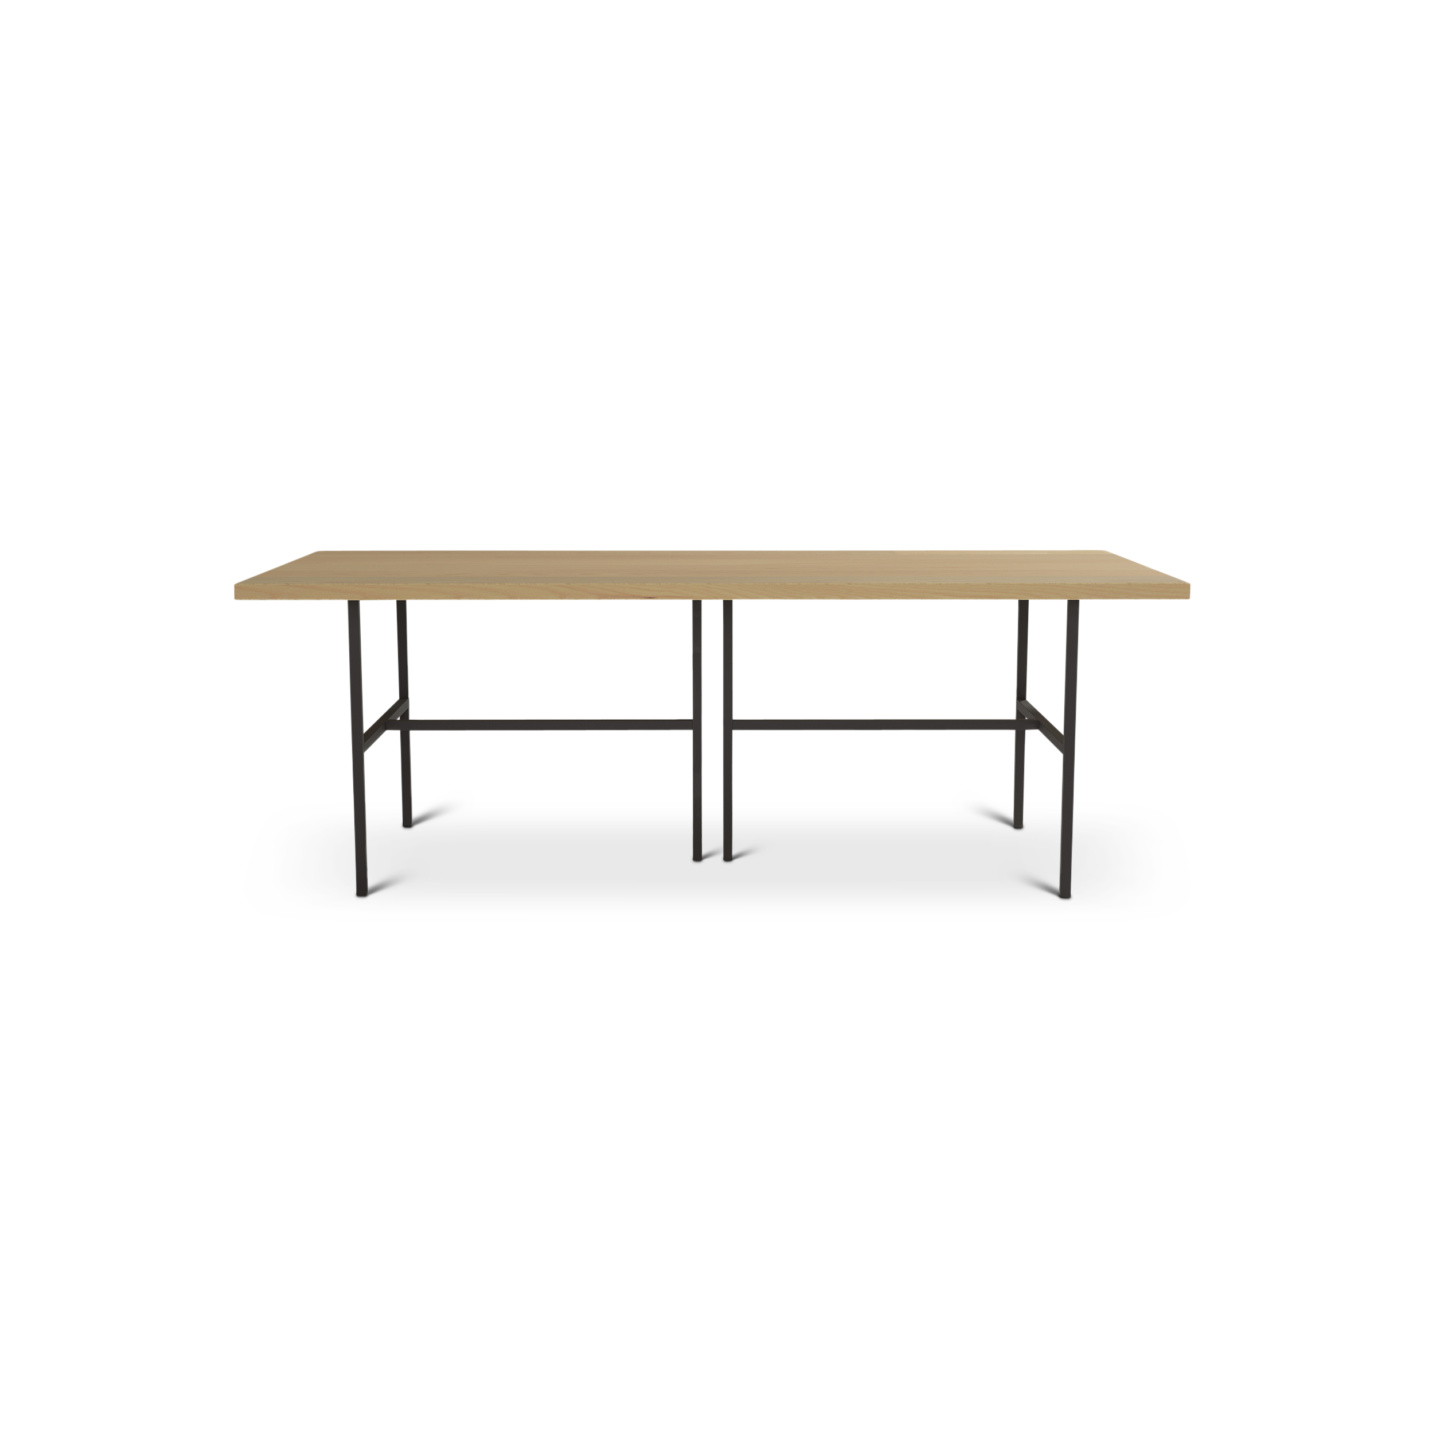 Solid ash dining room table with planks on metals legs